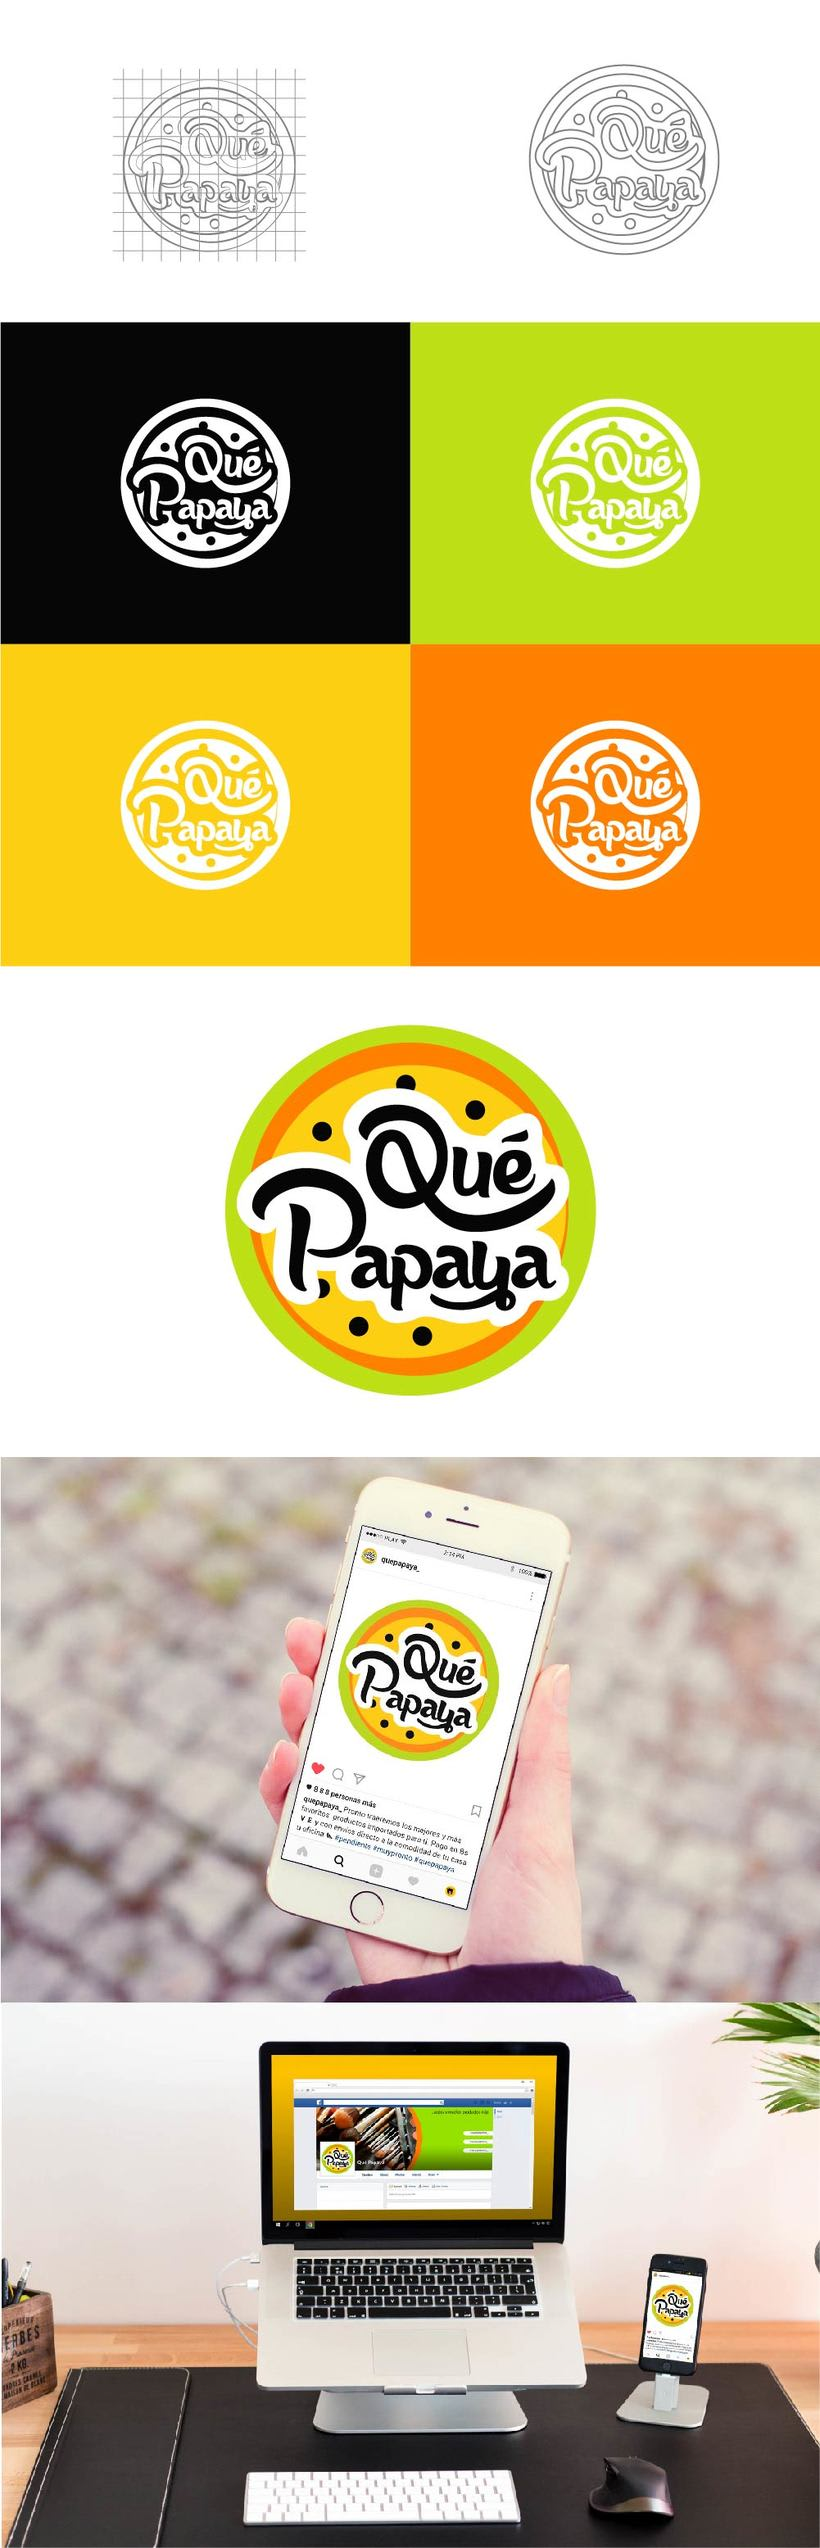 Logo Design: QuéPapaya -1